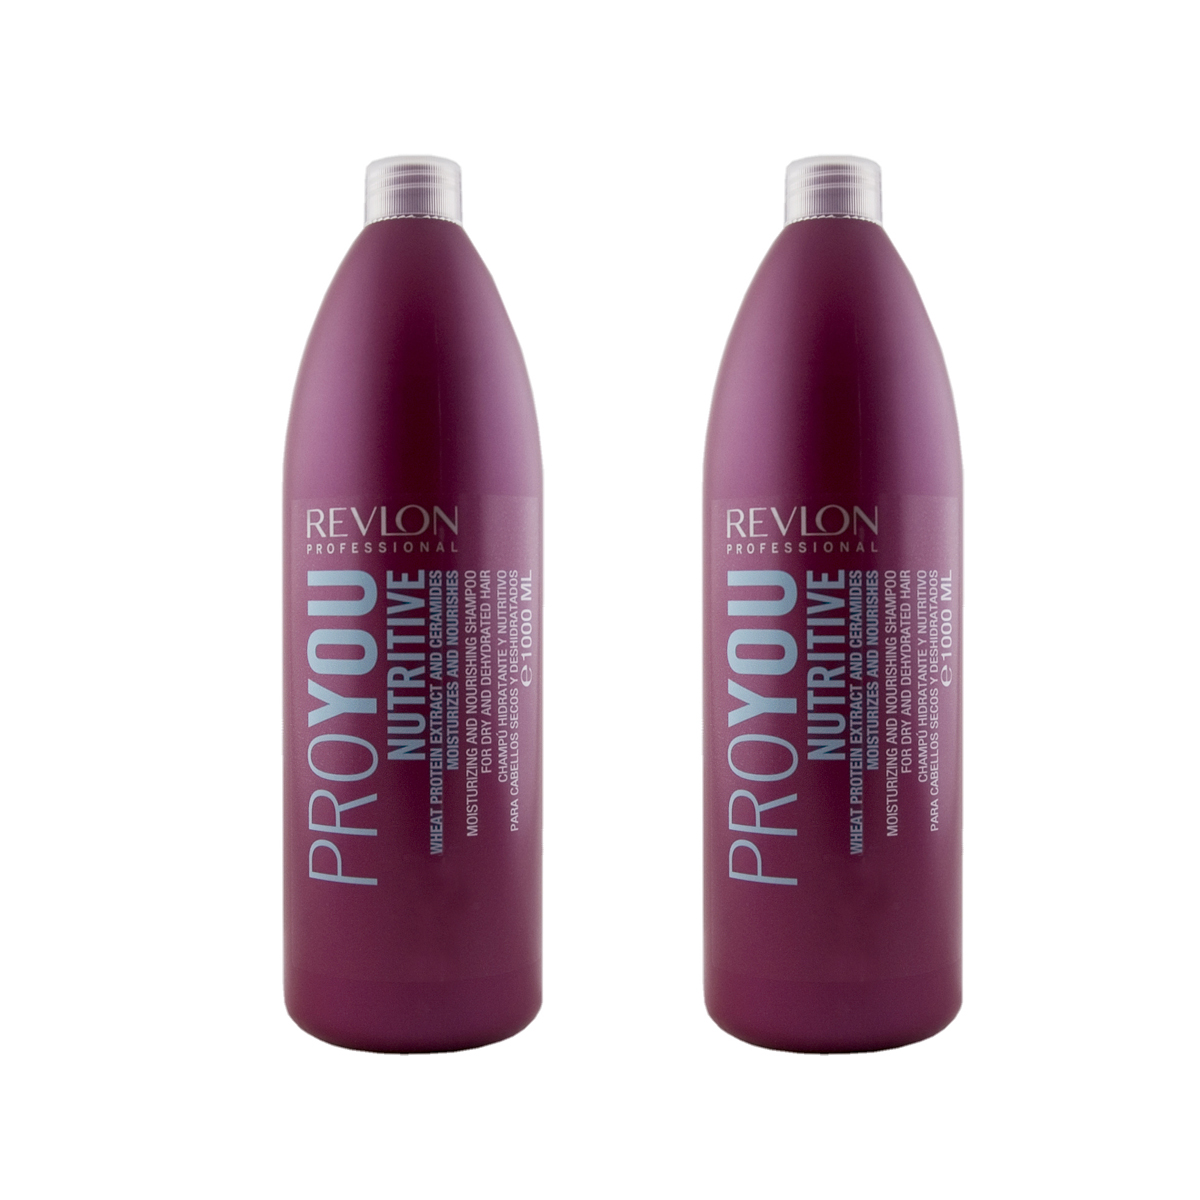 Revlon Professional Pro You Hydro-Nutritive Shampoo 2 x 350 ml